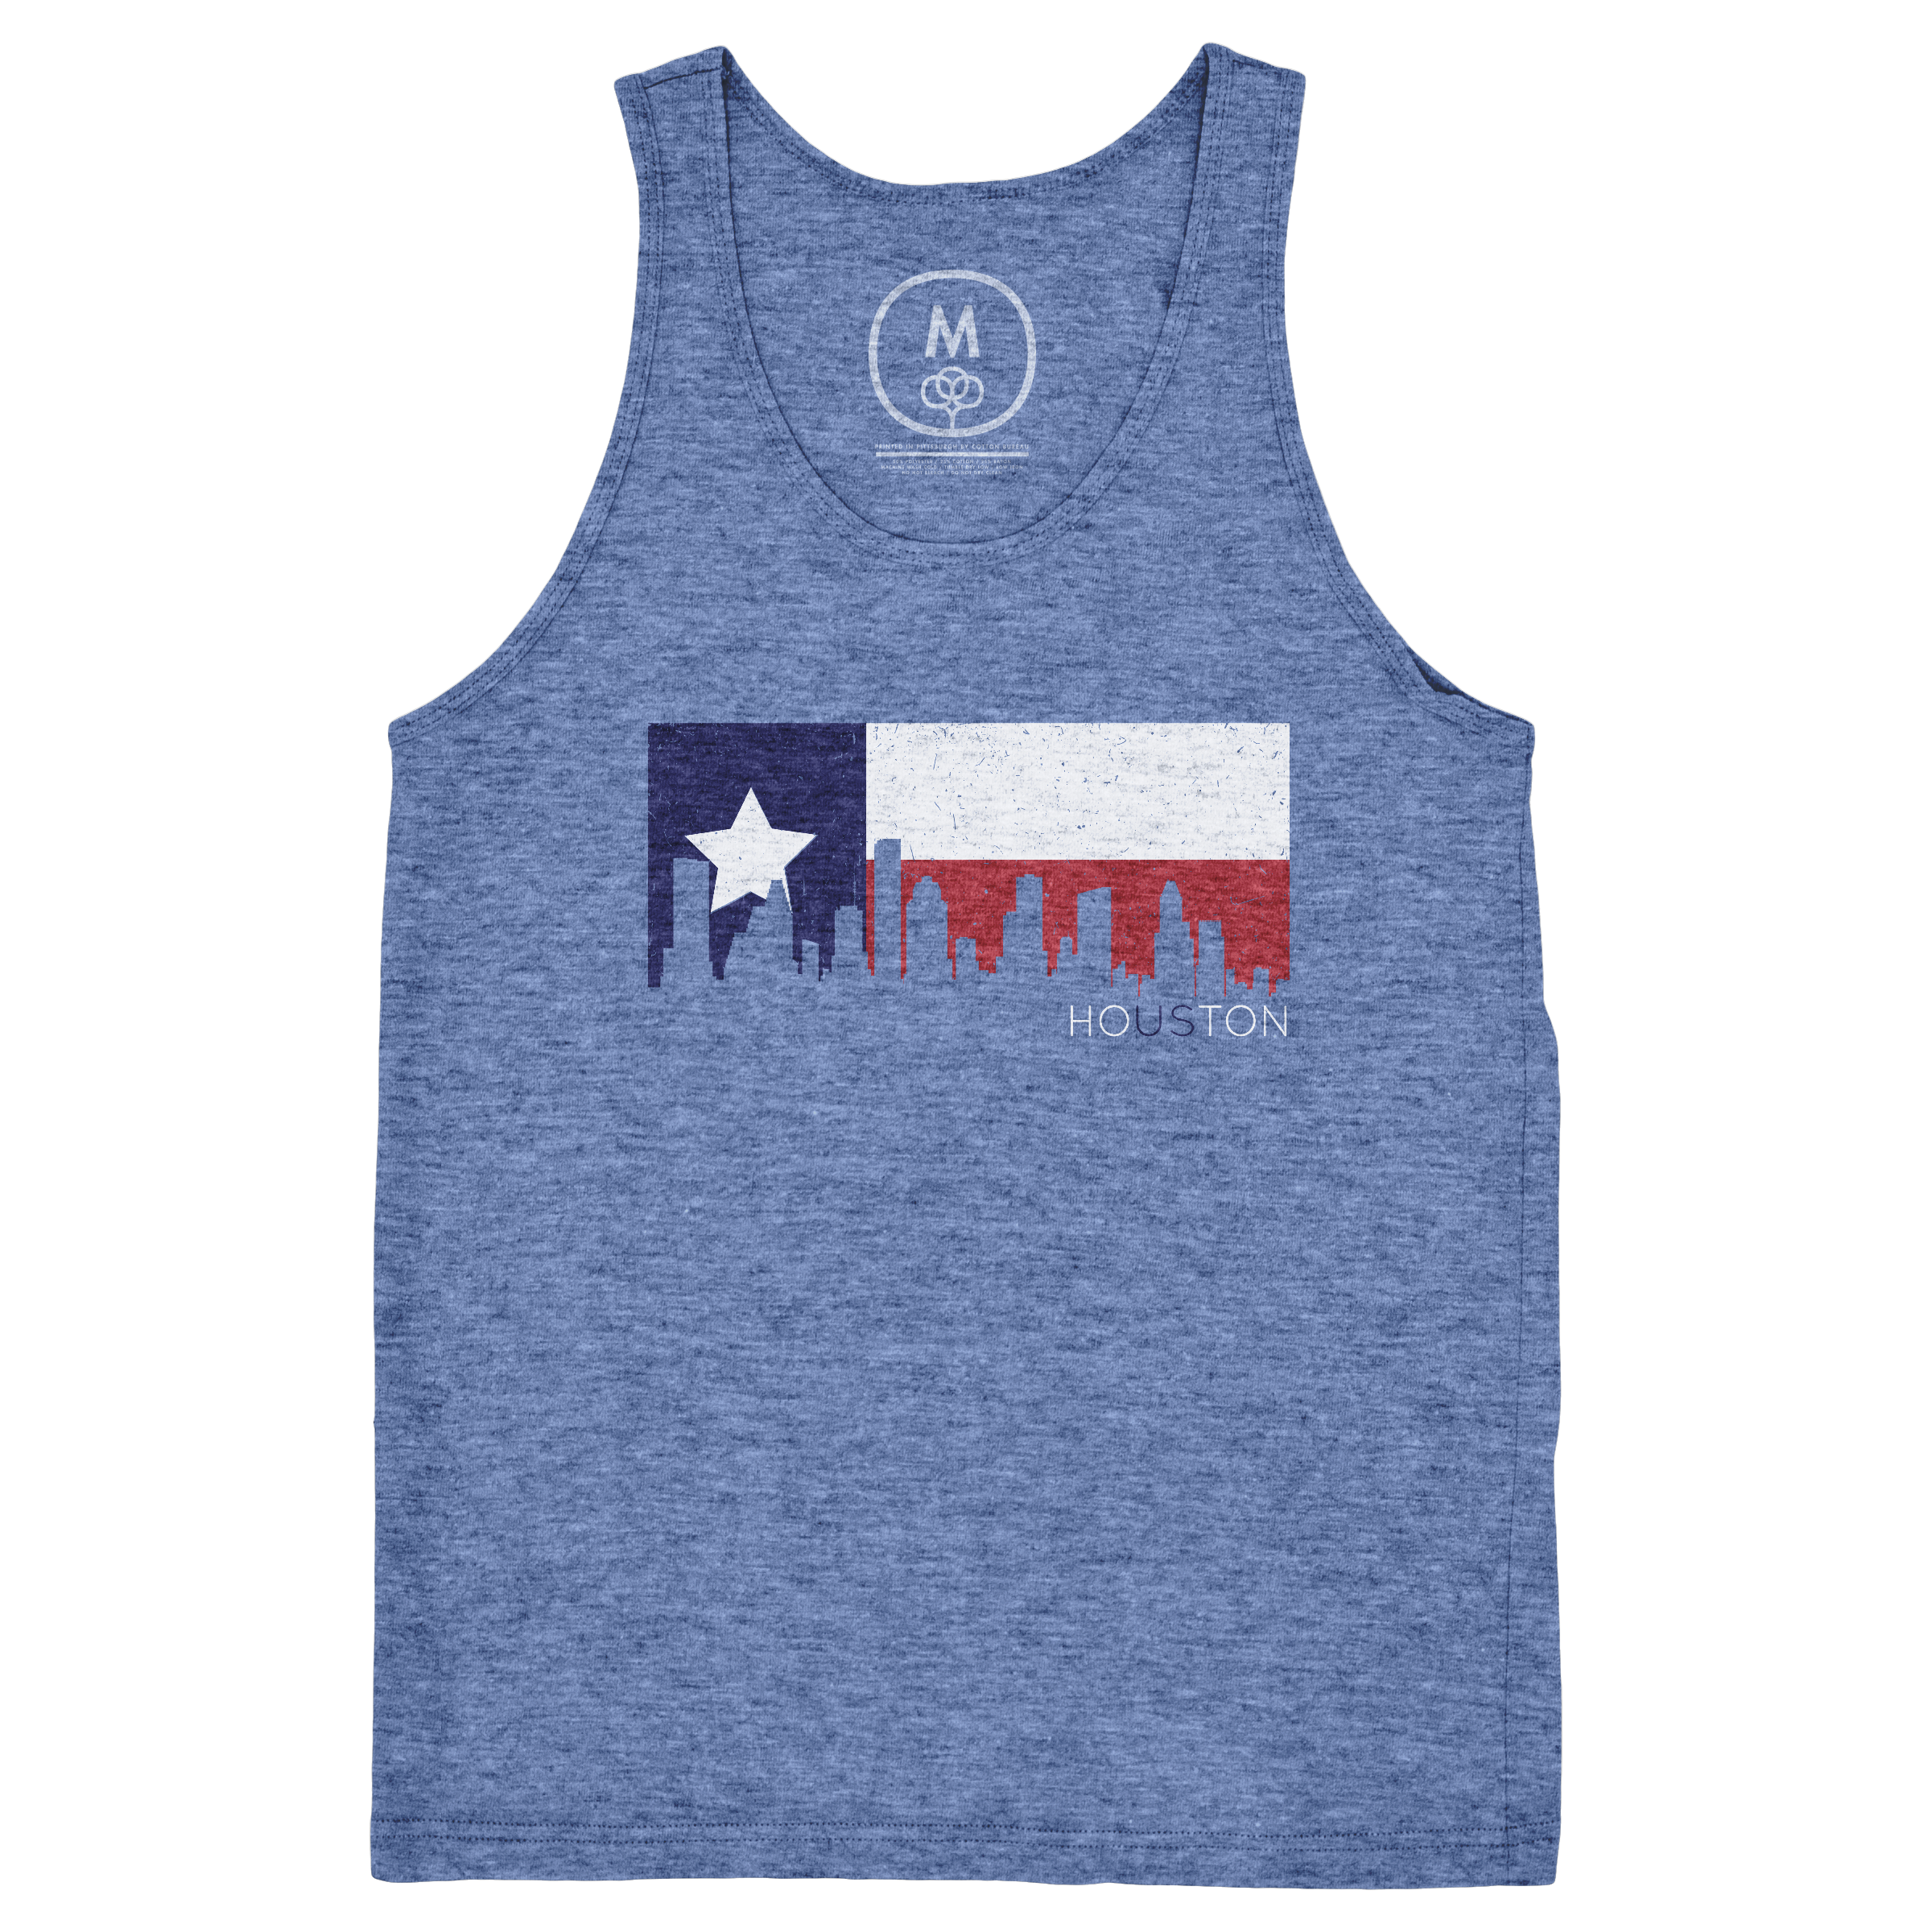 Helping HoUSton as One Tank Top